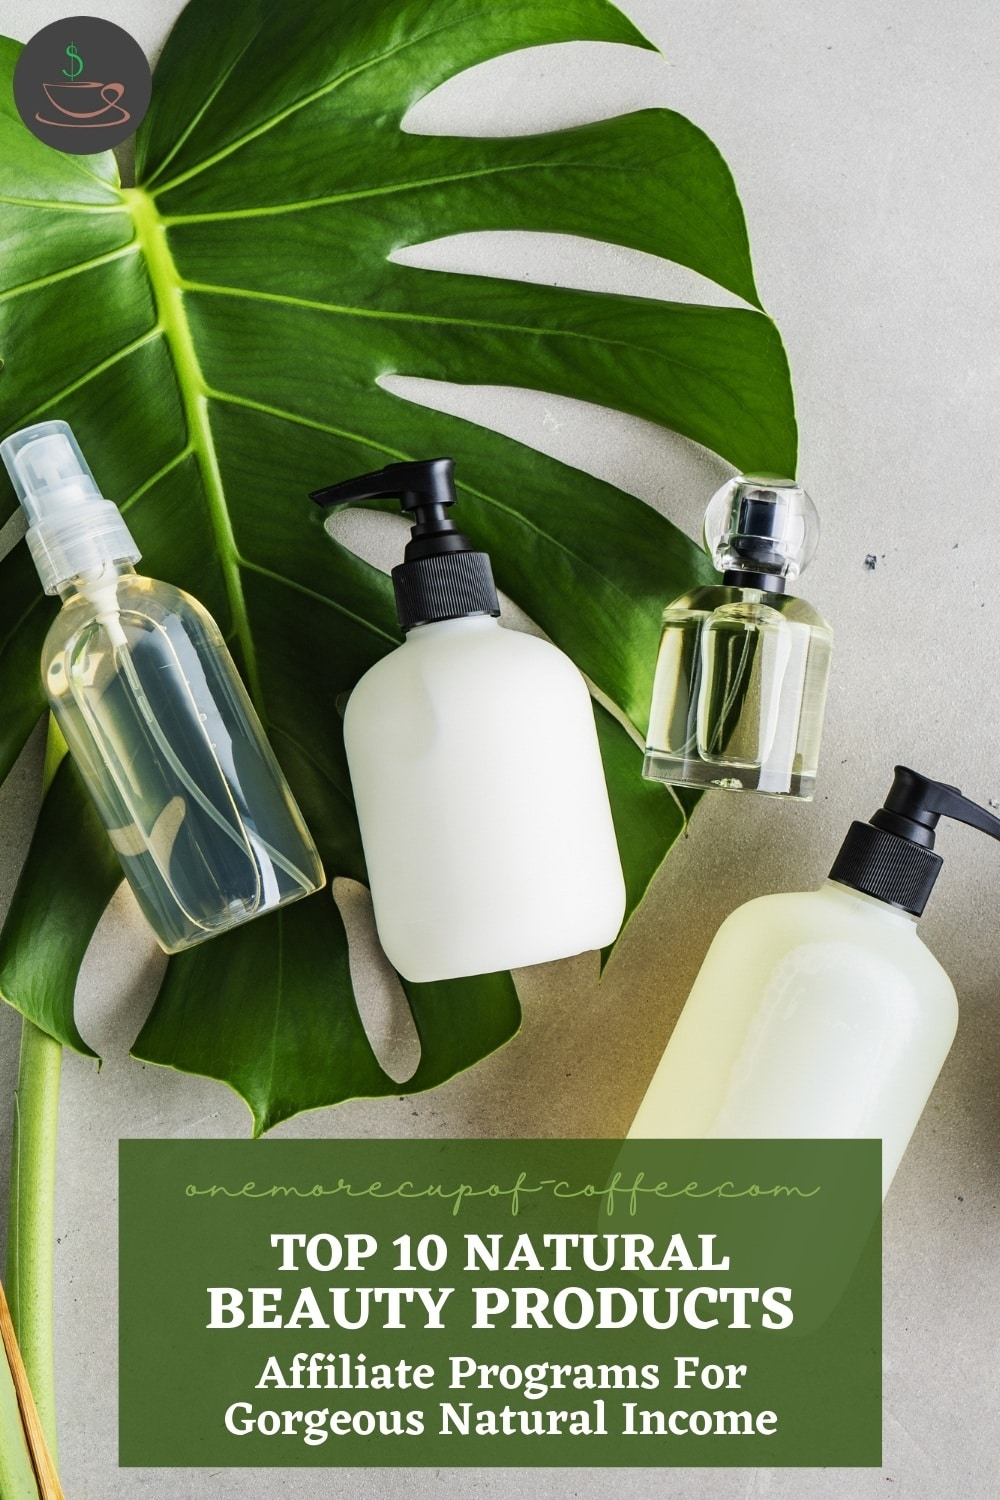 """natural beauty products in black and white containers, and one in clear bottle container, laid out on a grey surface with a big green leaf; with text overlay """"Top 10 Natural Beauty Products Affiliate Programs For Gorgeous Natural Income"""""""